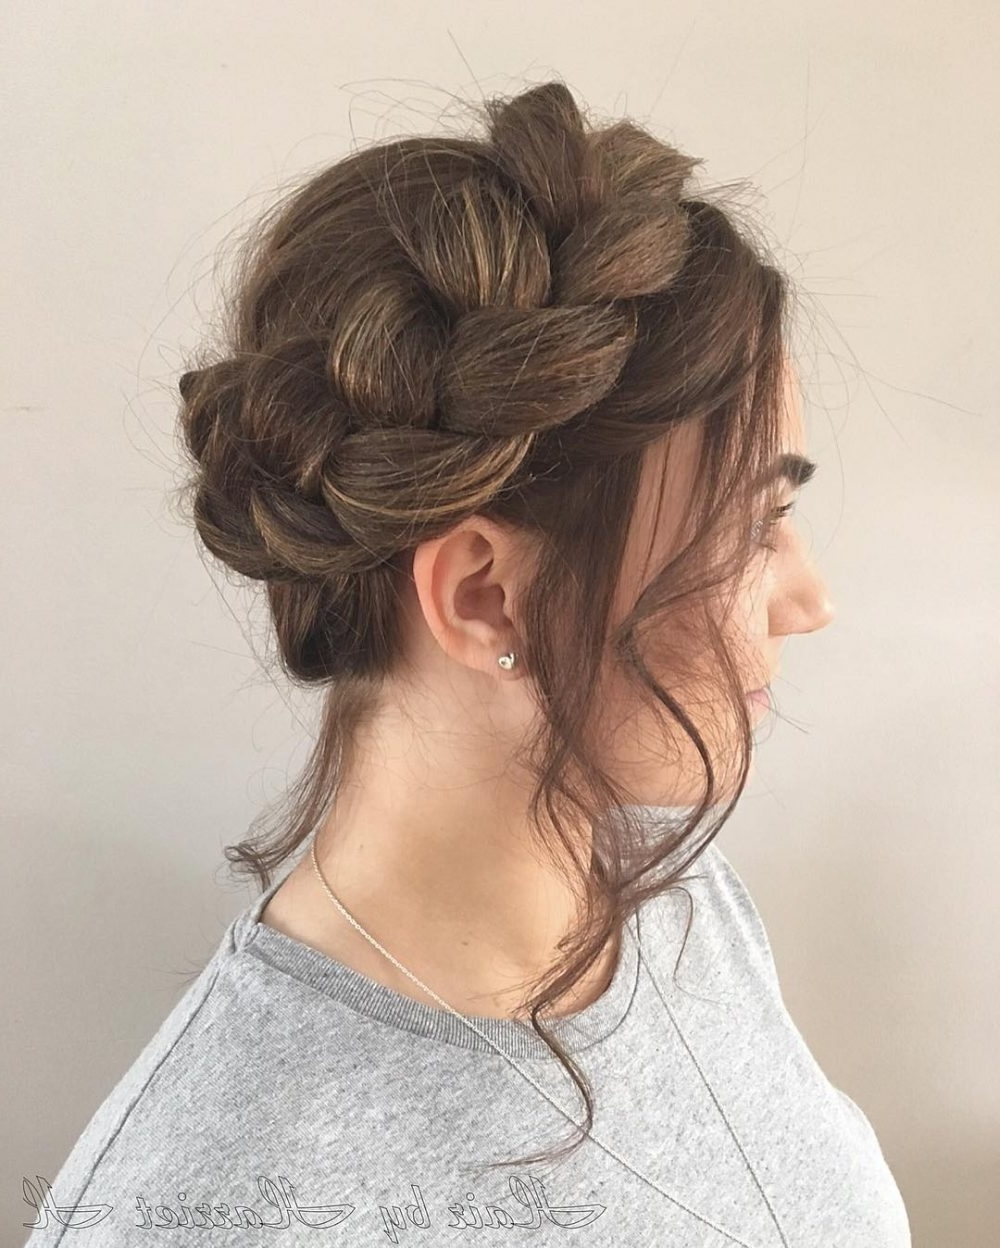 28 Gorgeous Braided Updo Ideas For 2018 Inside Most Recently Released Unique Braided Up Do Hairstyles (View 5 of 15)